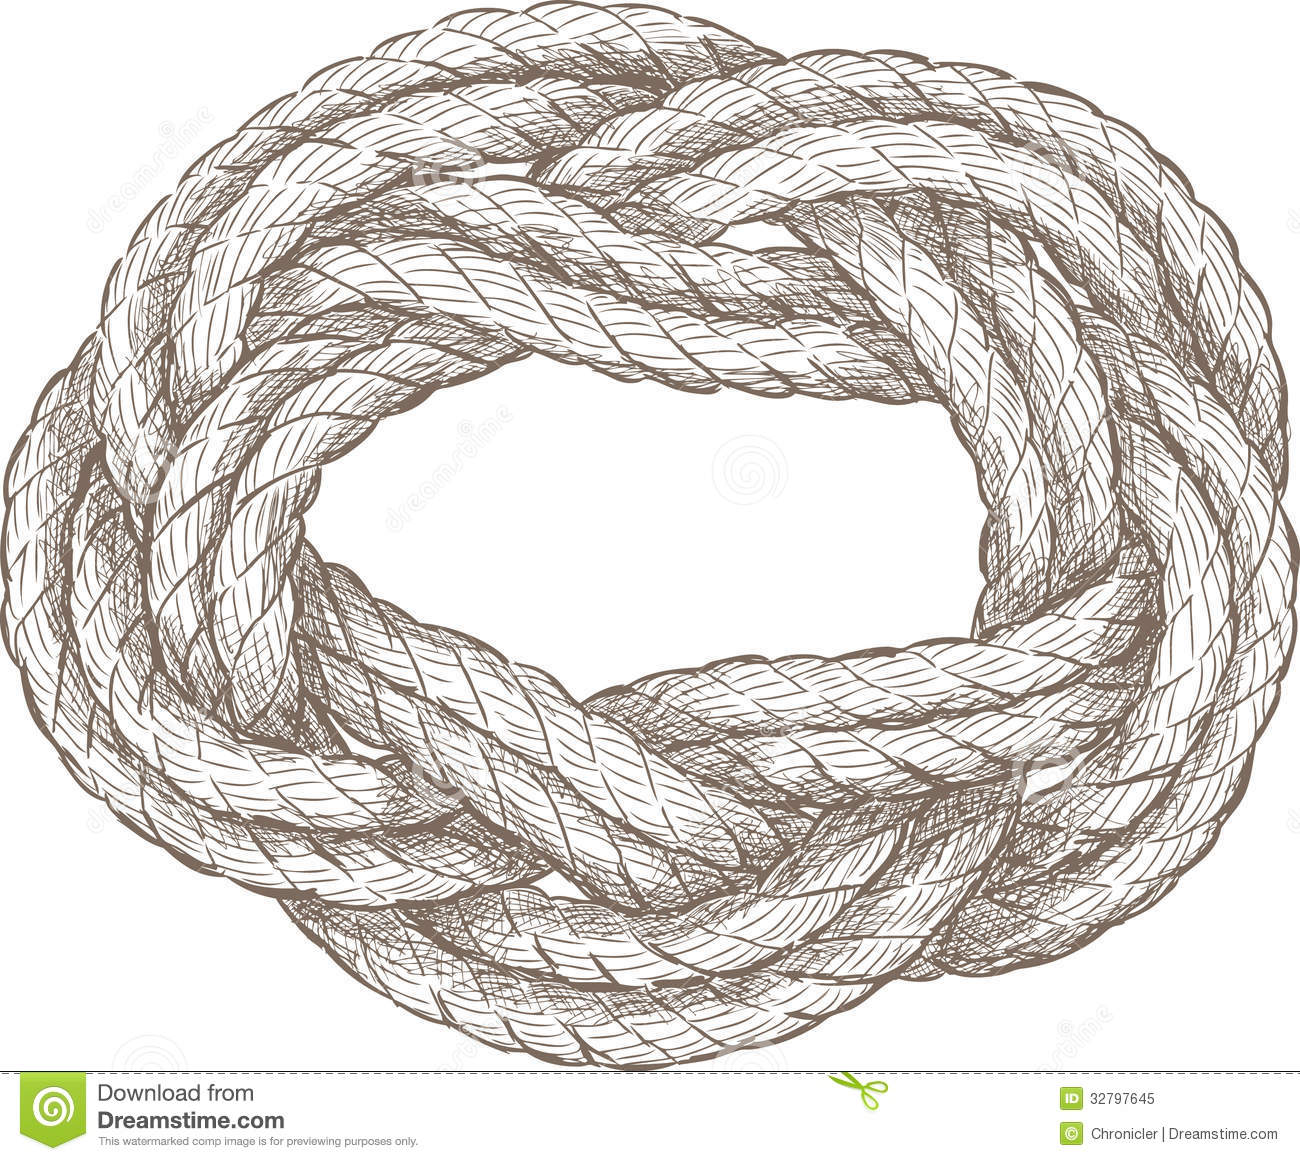 Vector drawing of a twisted rope of a sailboat rigging.